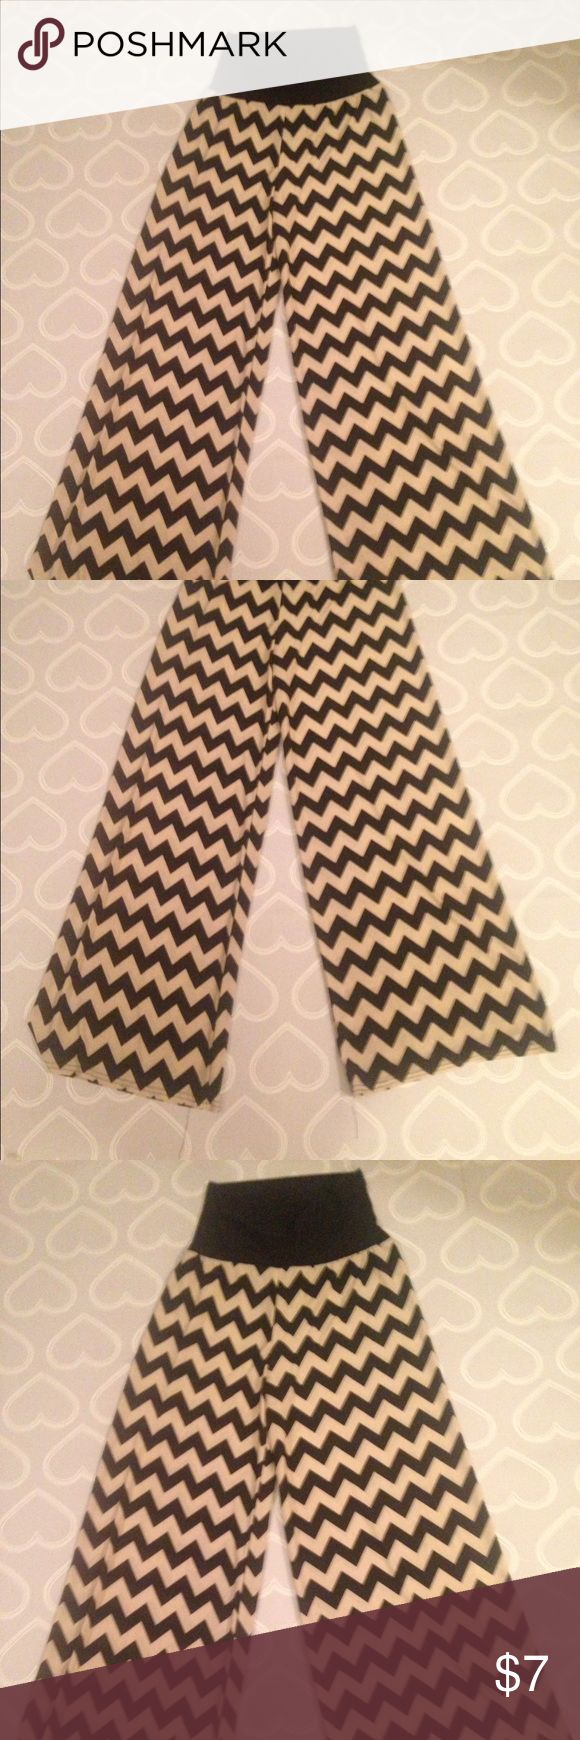 Women's chevron pants size small palazzo pants Super cute palazzo pants- chevron size small. These are very soft and are so comfortable! All purchases ships next business day 💕 park avenue Pants